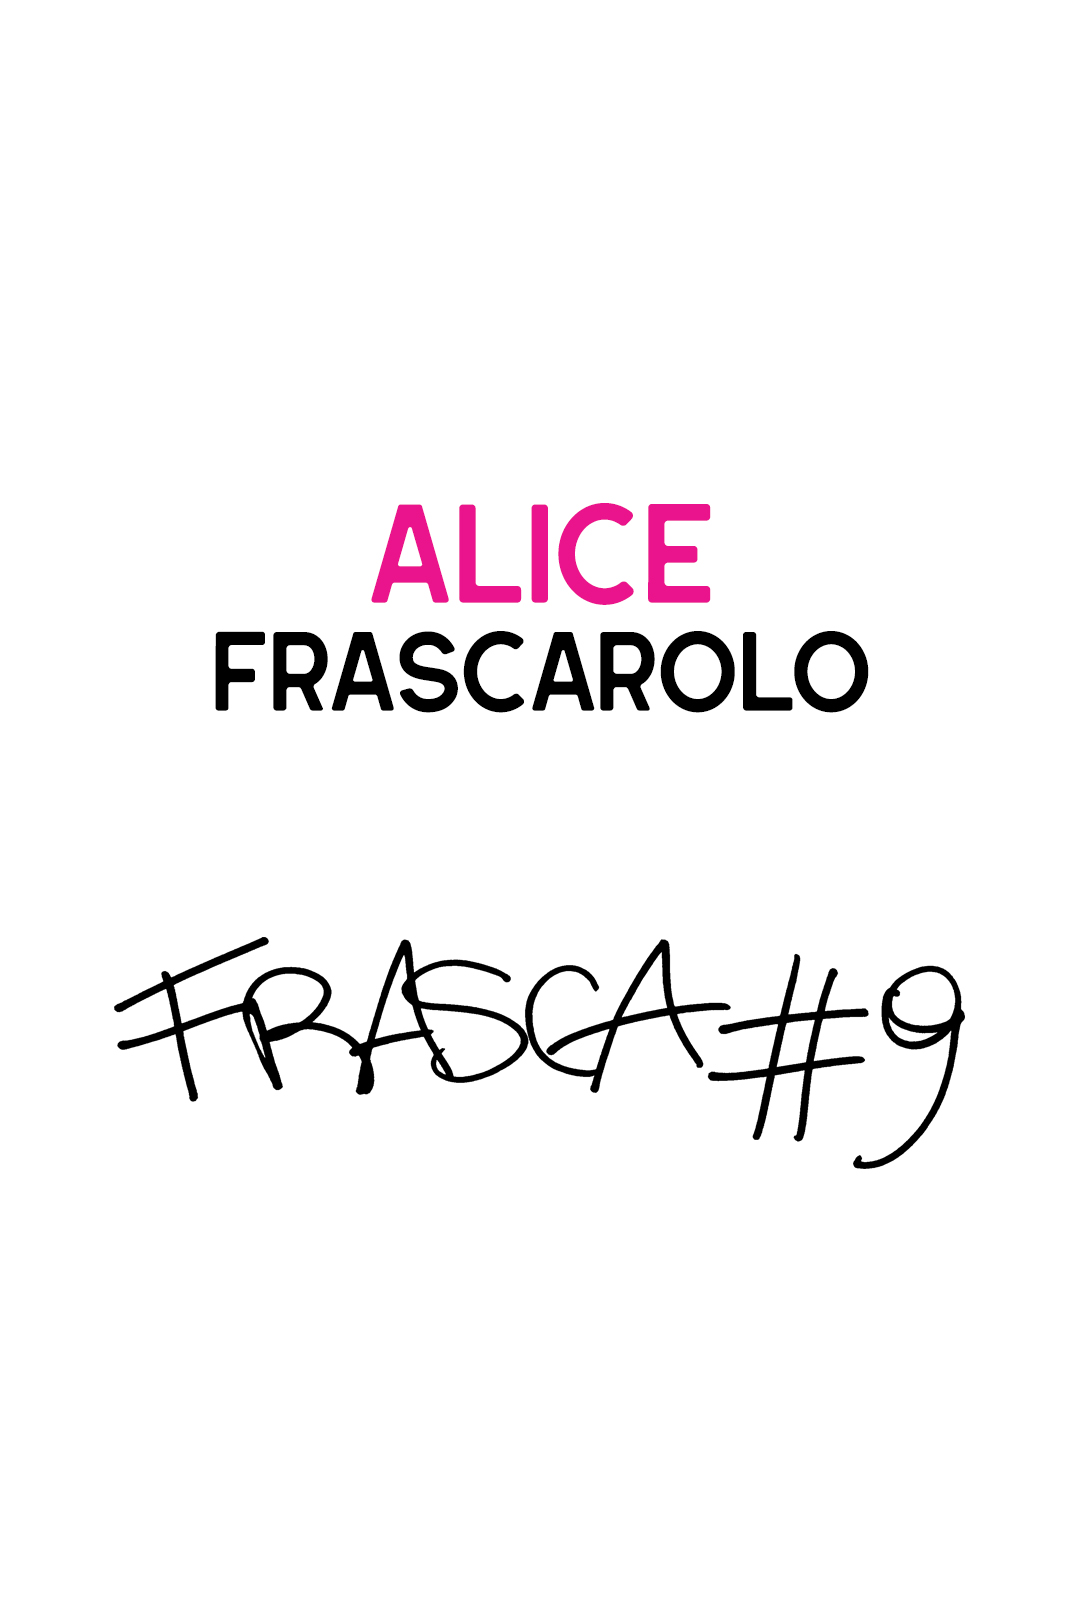 9 – Alice Frascarolo